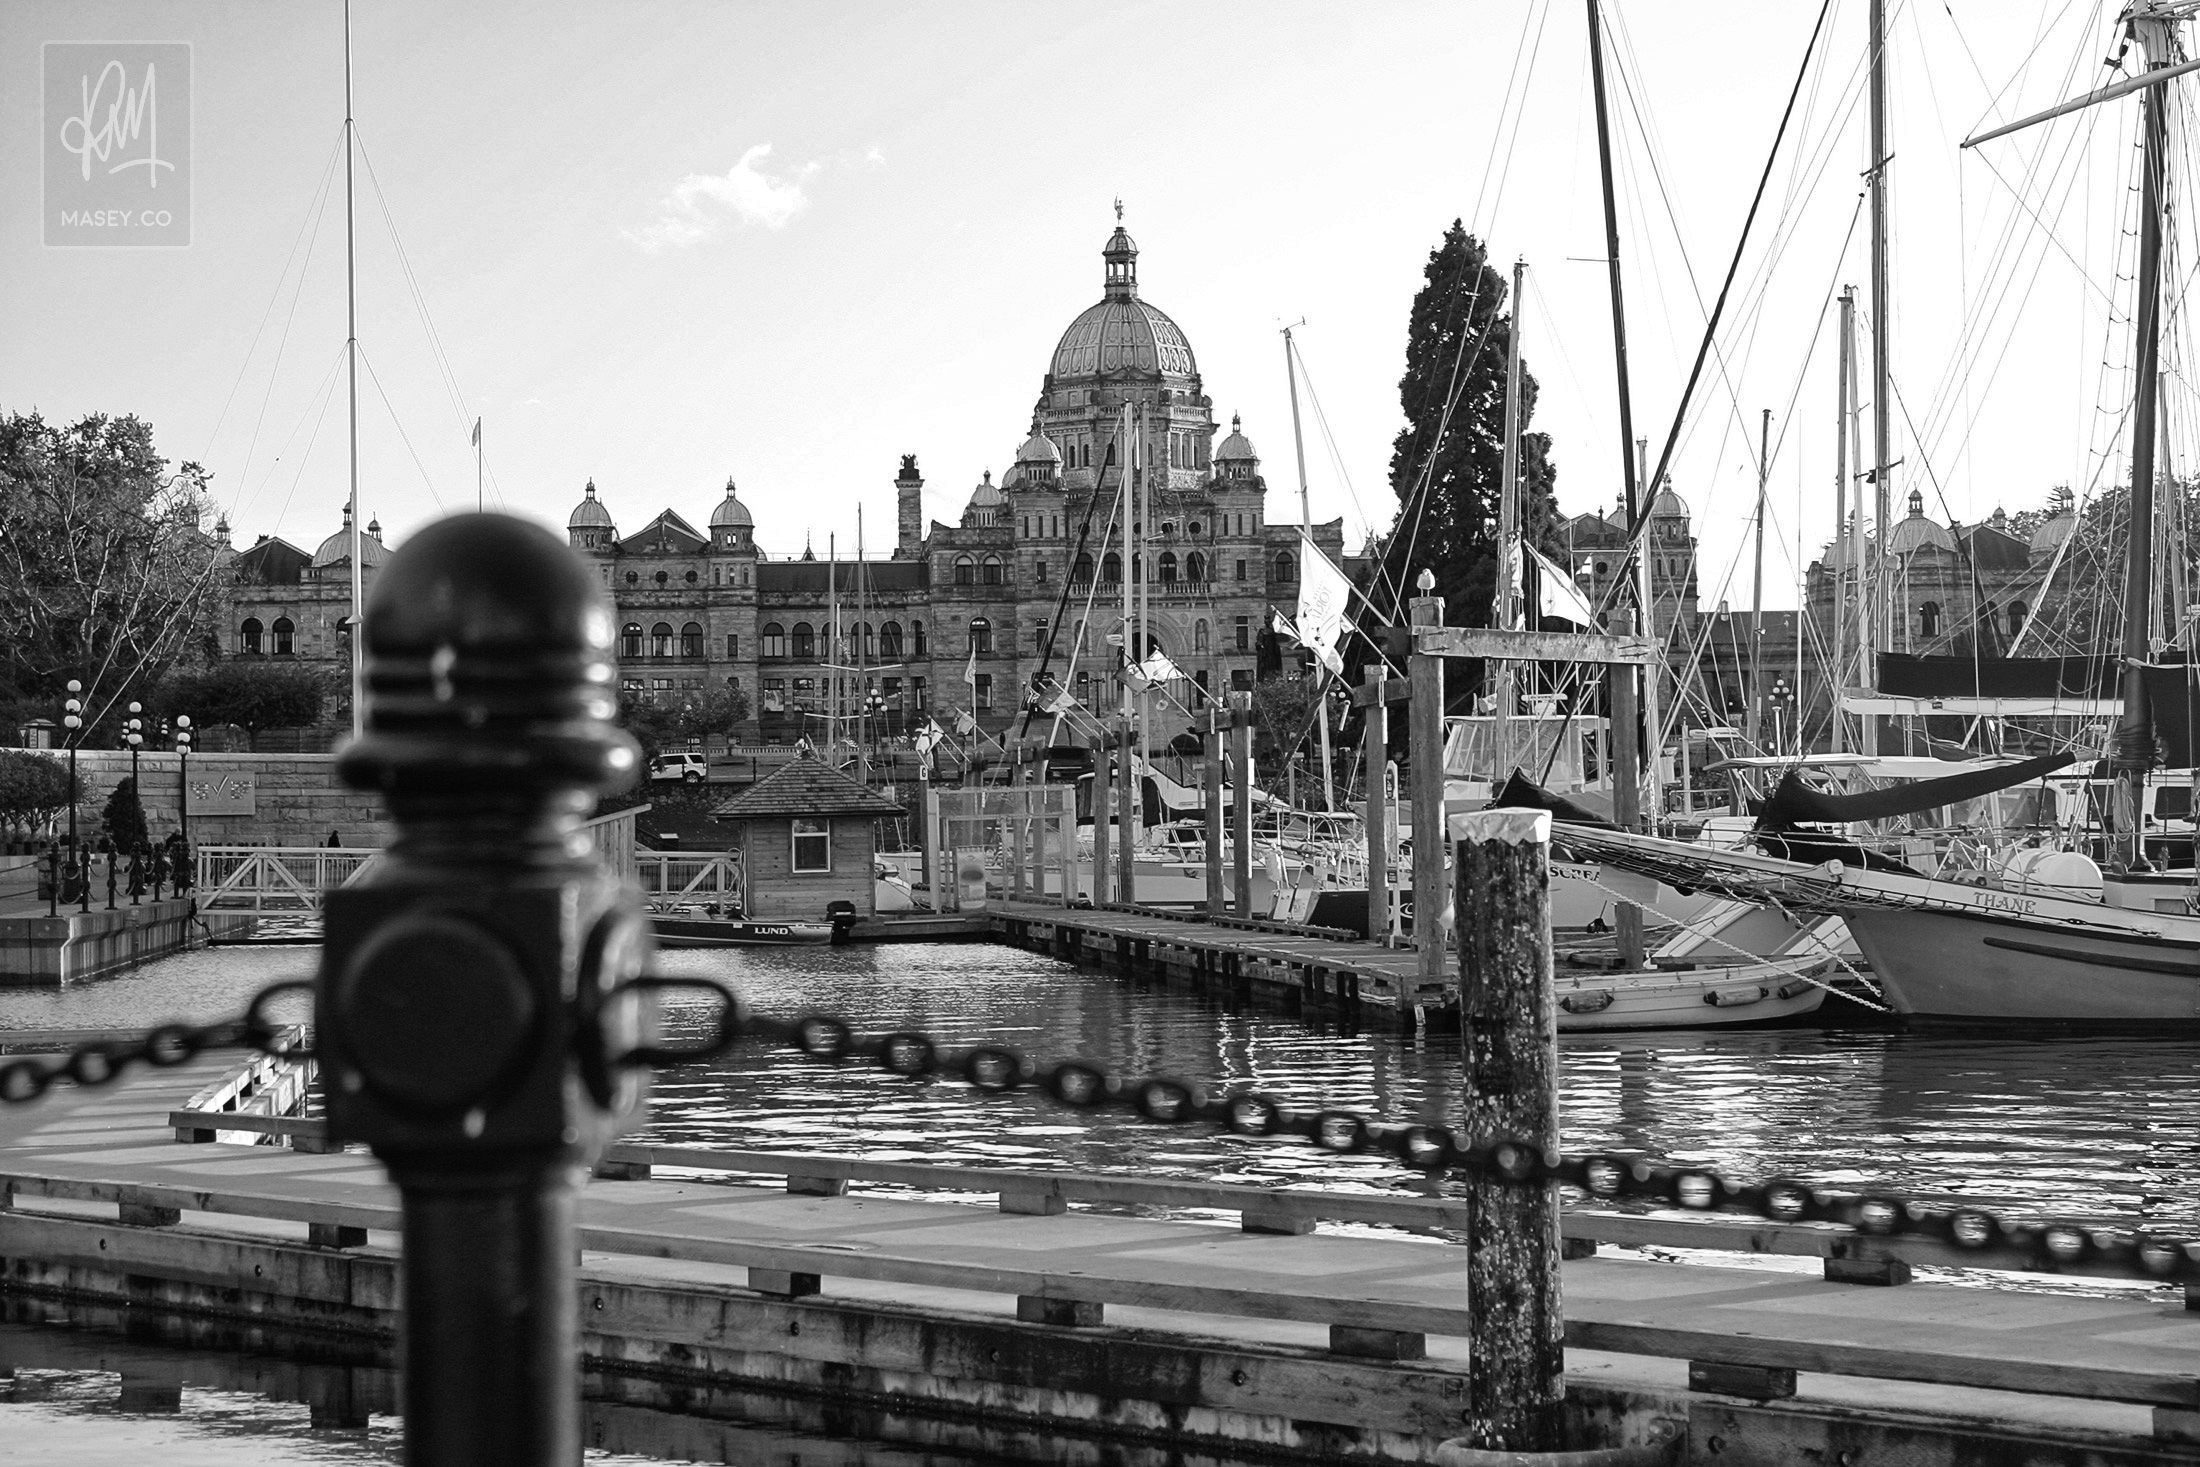 A Quick visit to Victoria, British Columbia